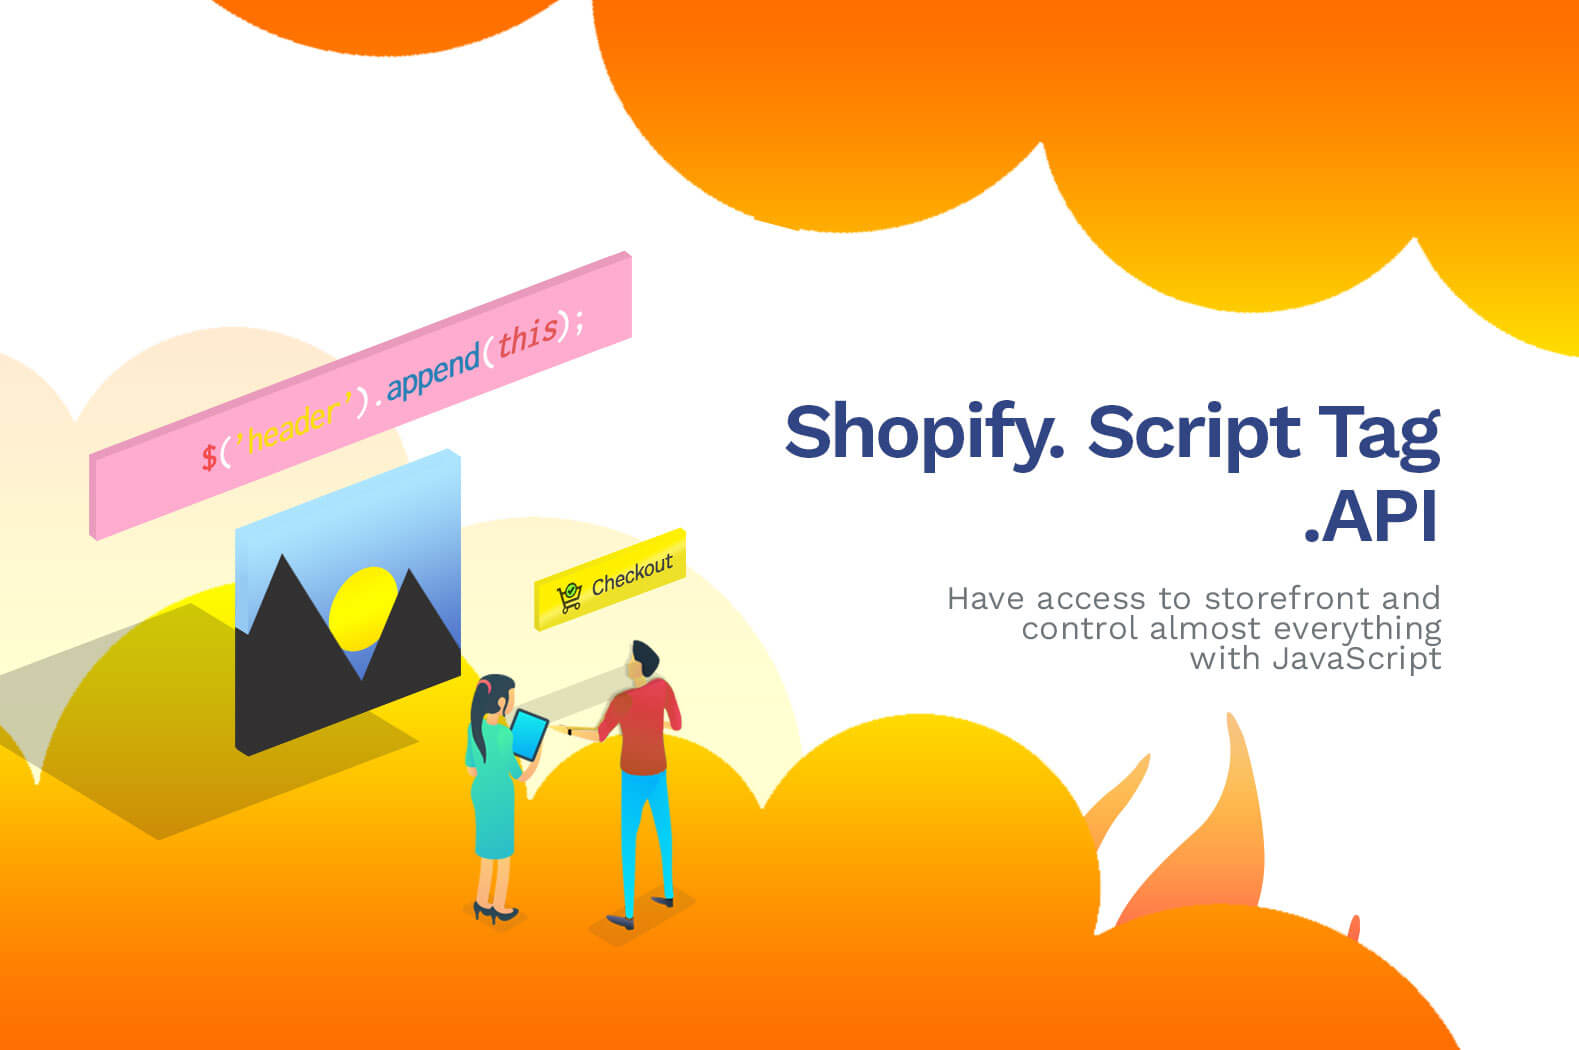 How to Display HTML in Shopify Store with Shopify App (Script Tag)